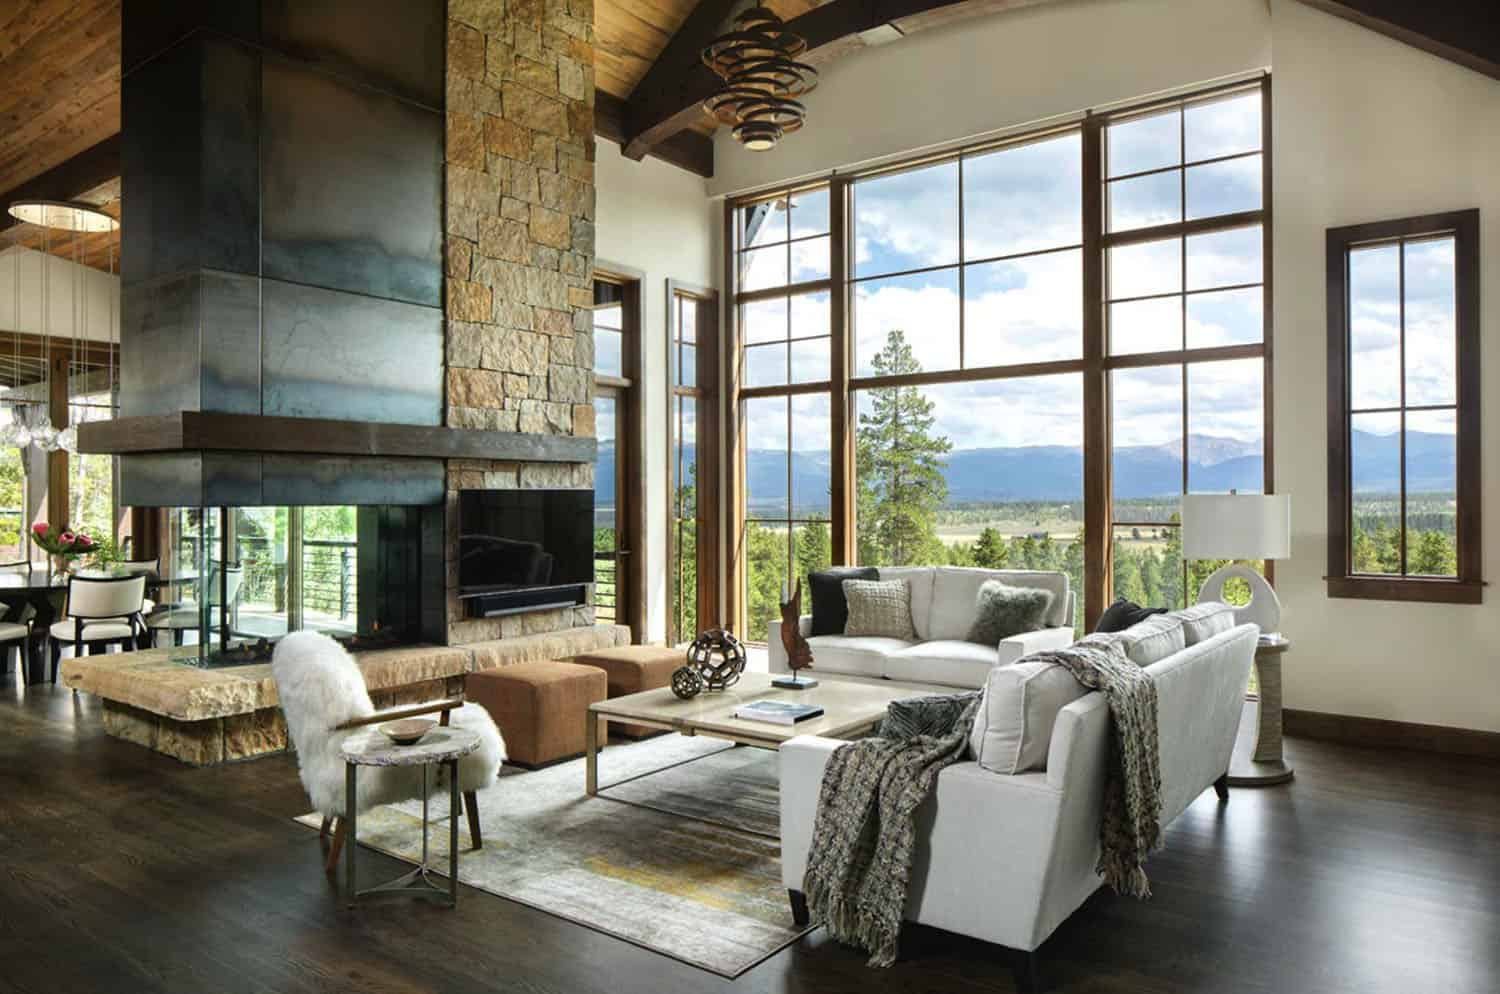 Inviting Craftsman-inspired home overlooking the Continental Divide